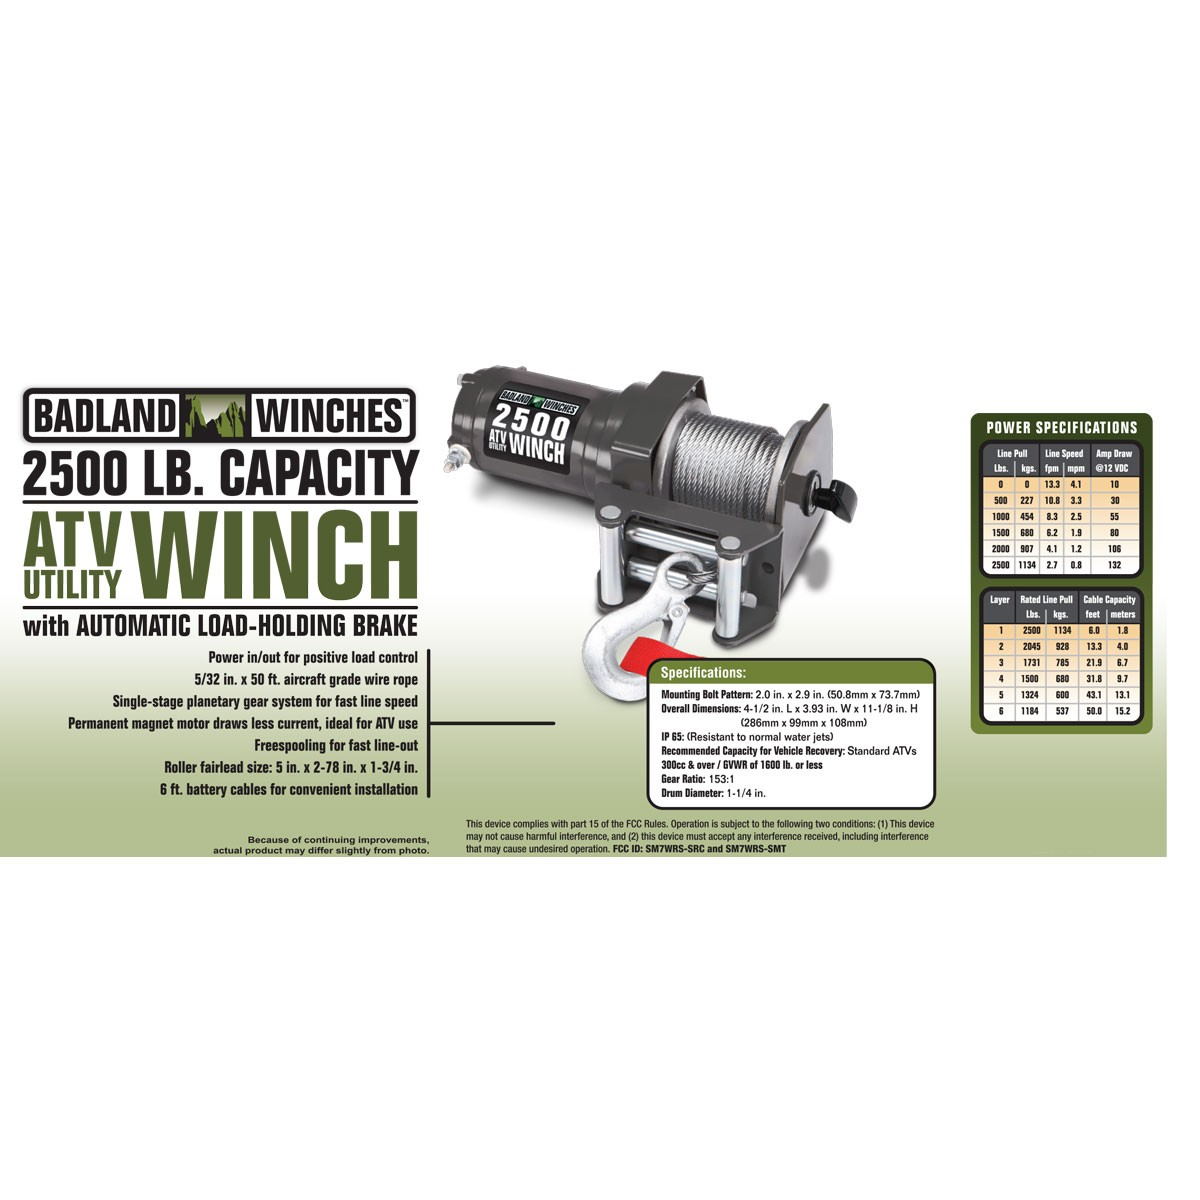 hight resolution of badland electric winch 2500 lb atv utility wireless remote control 61840 walmart com